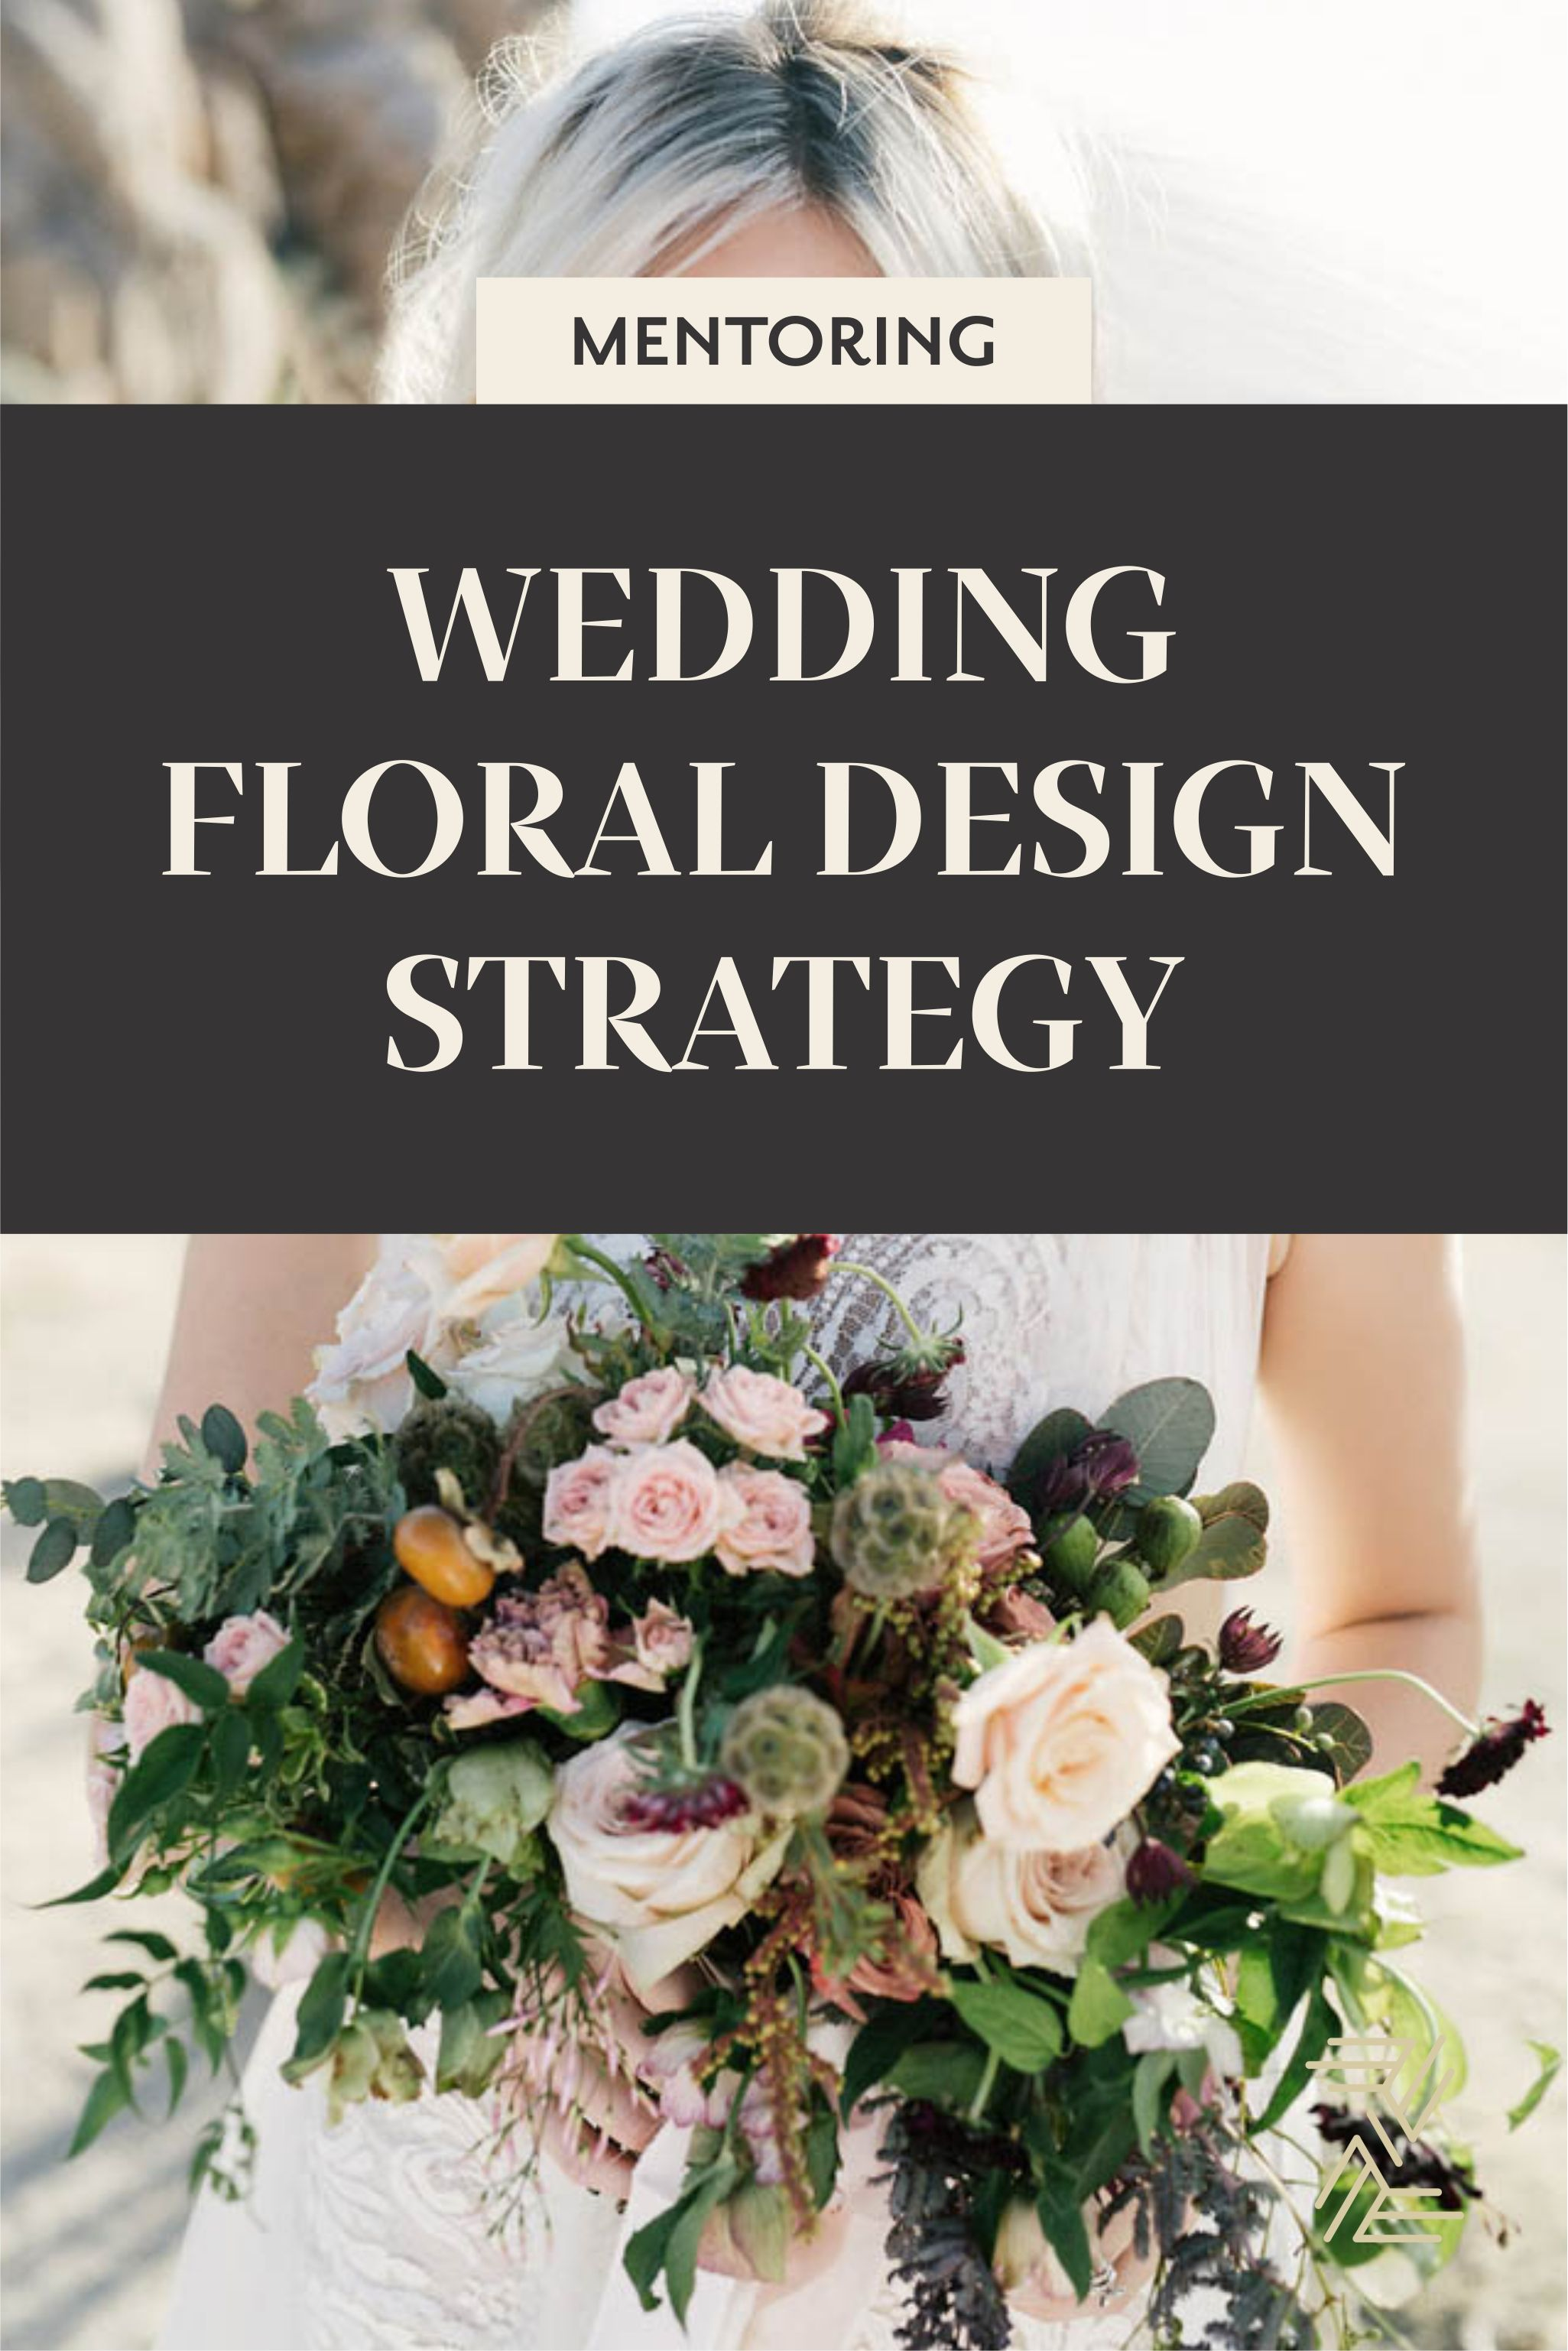 Wedding Floral Designers Business Strategy Through Mentoring With Jessica Zimmerman Floral Design Business Wedding Business Ideas Floral Arrangements Wedding